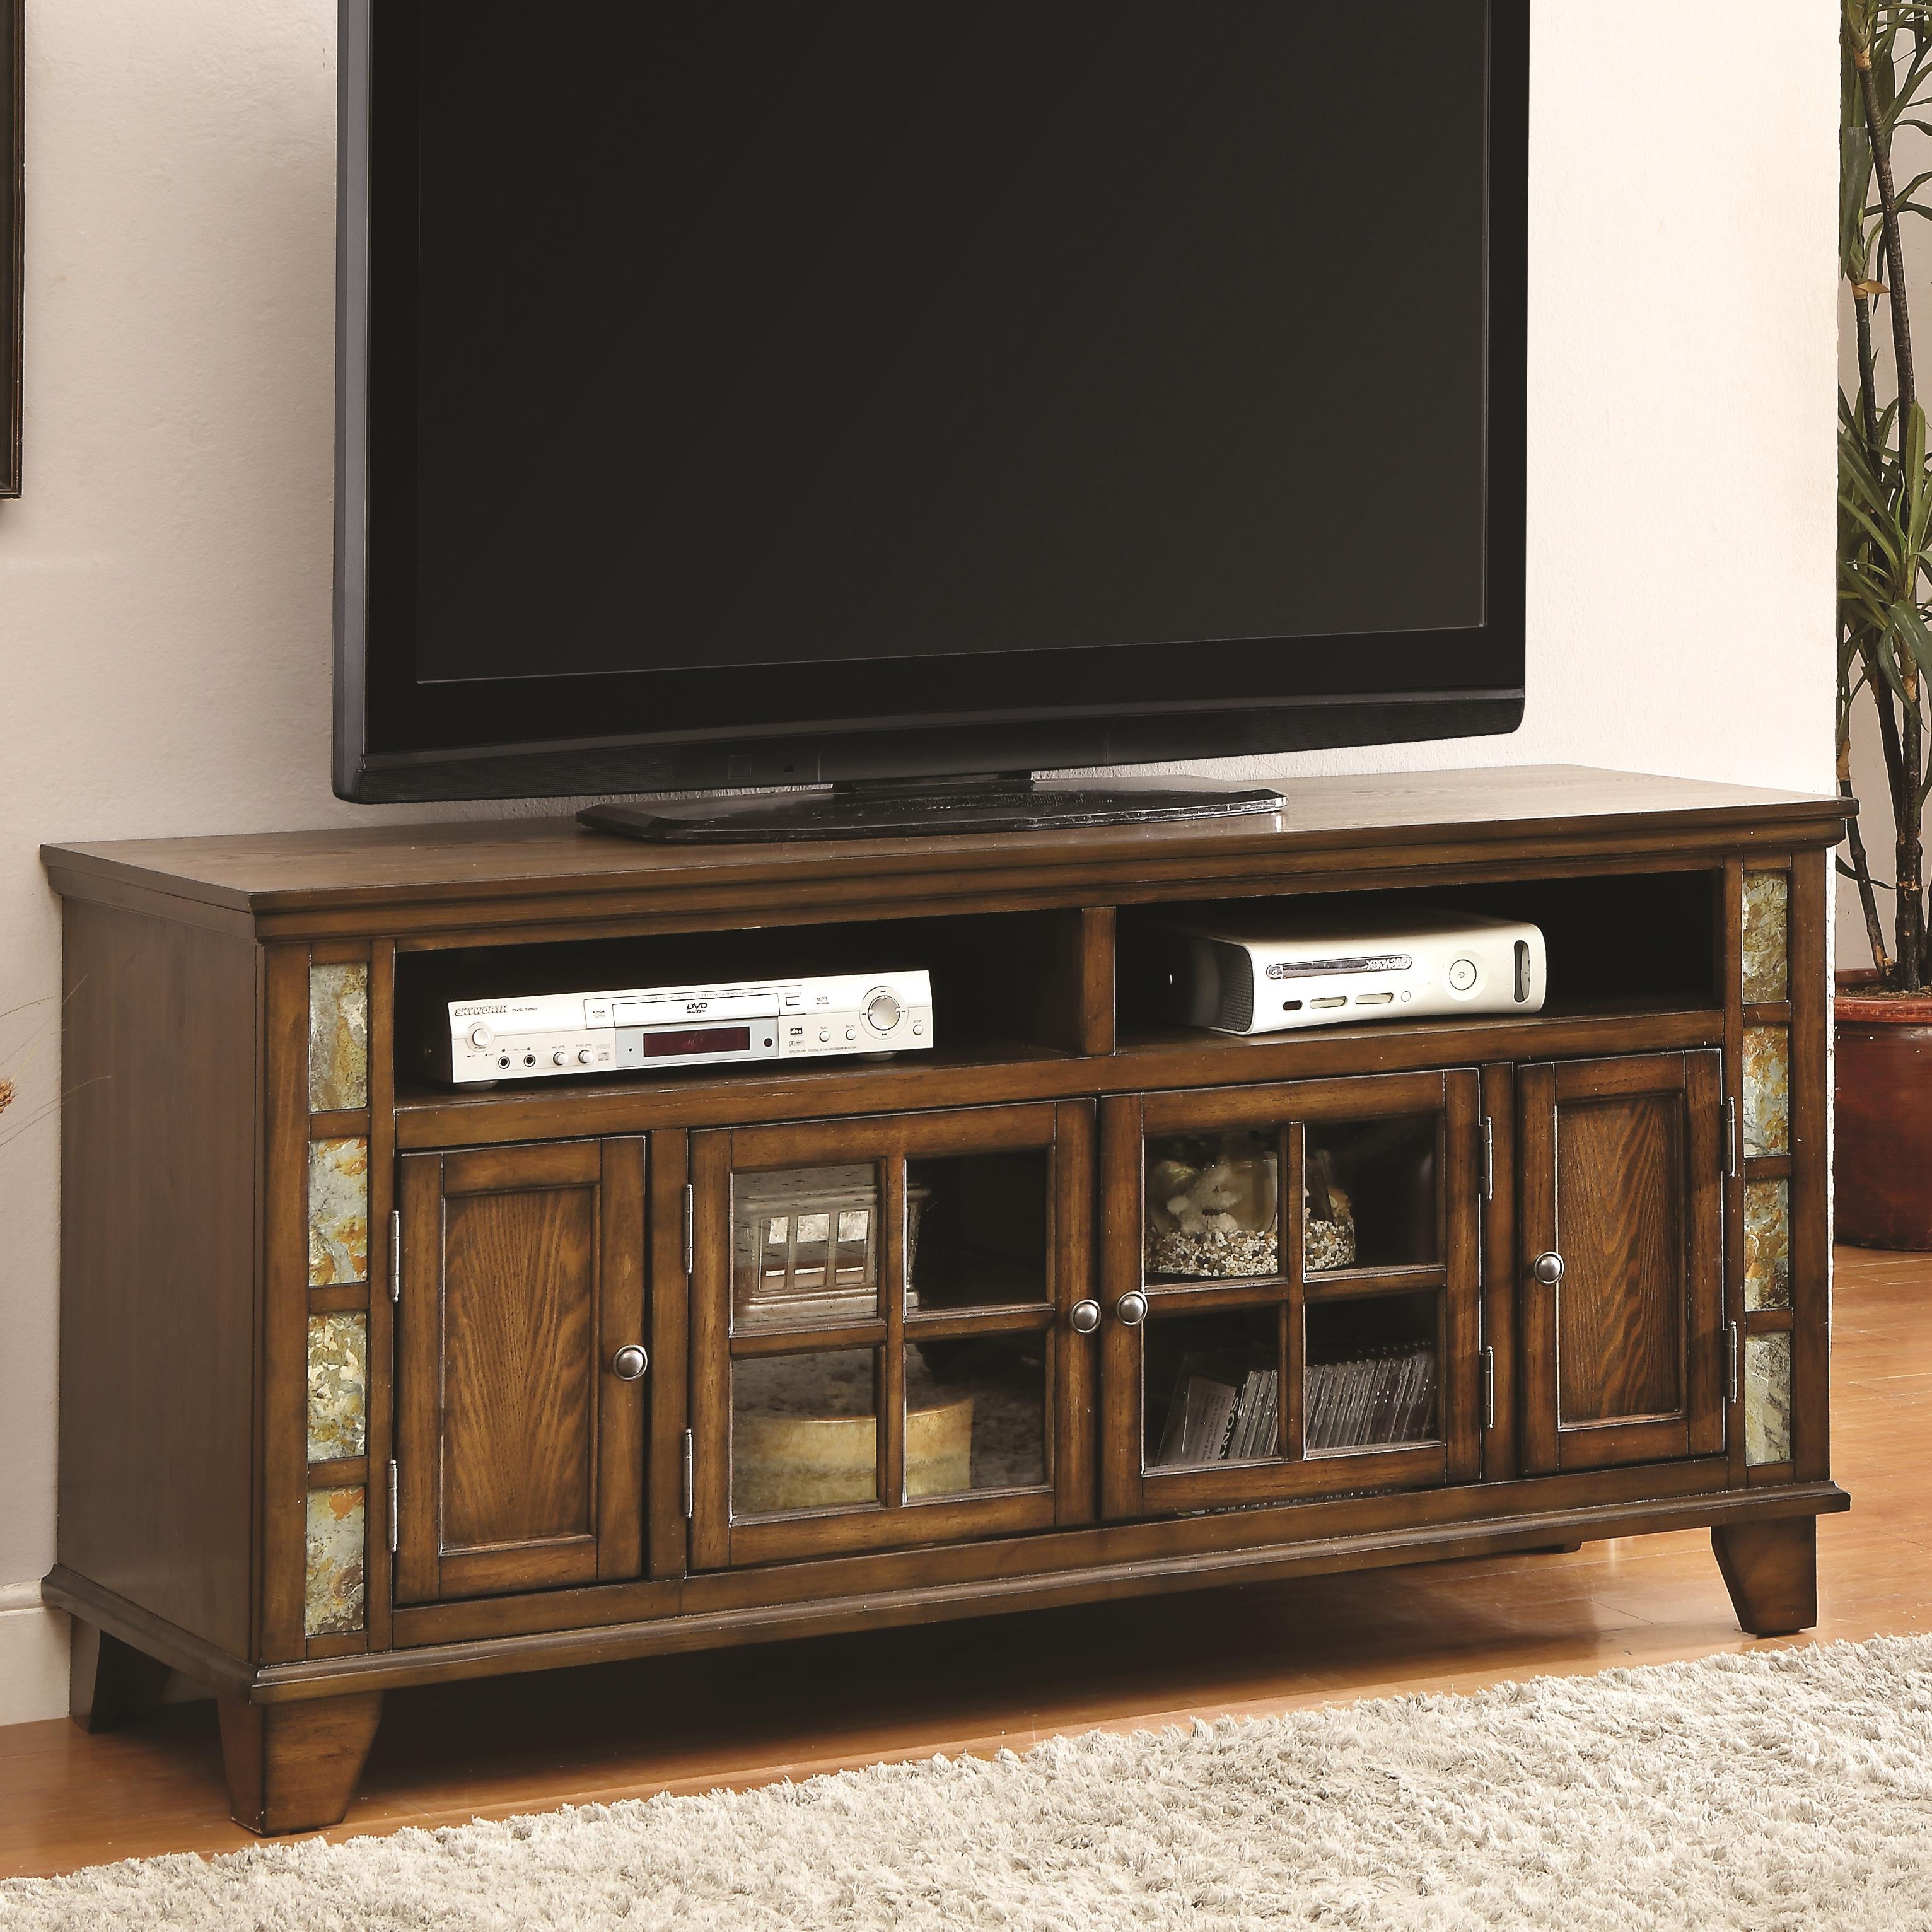 Tv Stand With Glass And Wood Doors Quality Furniture At